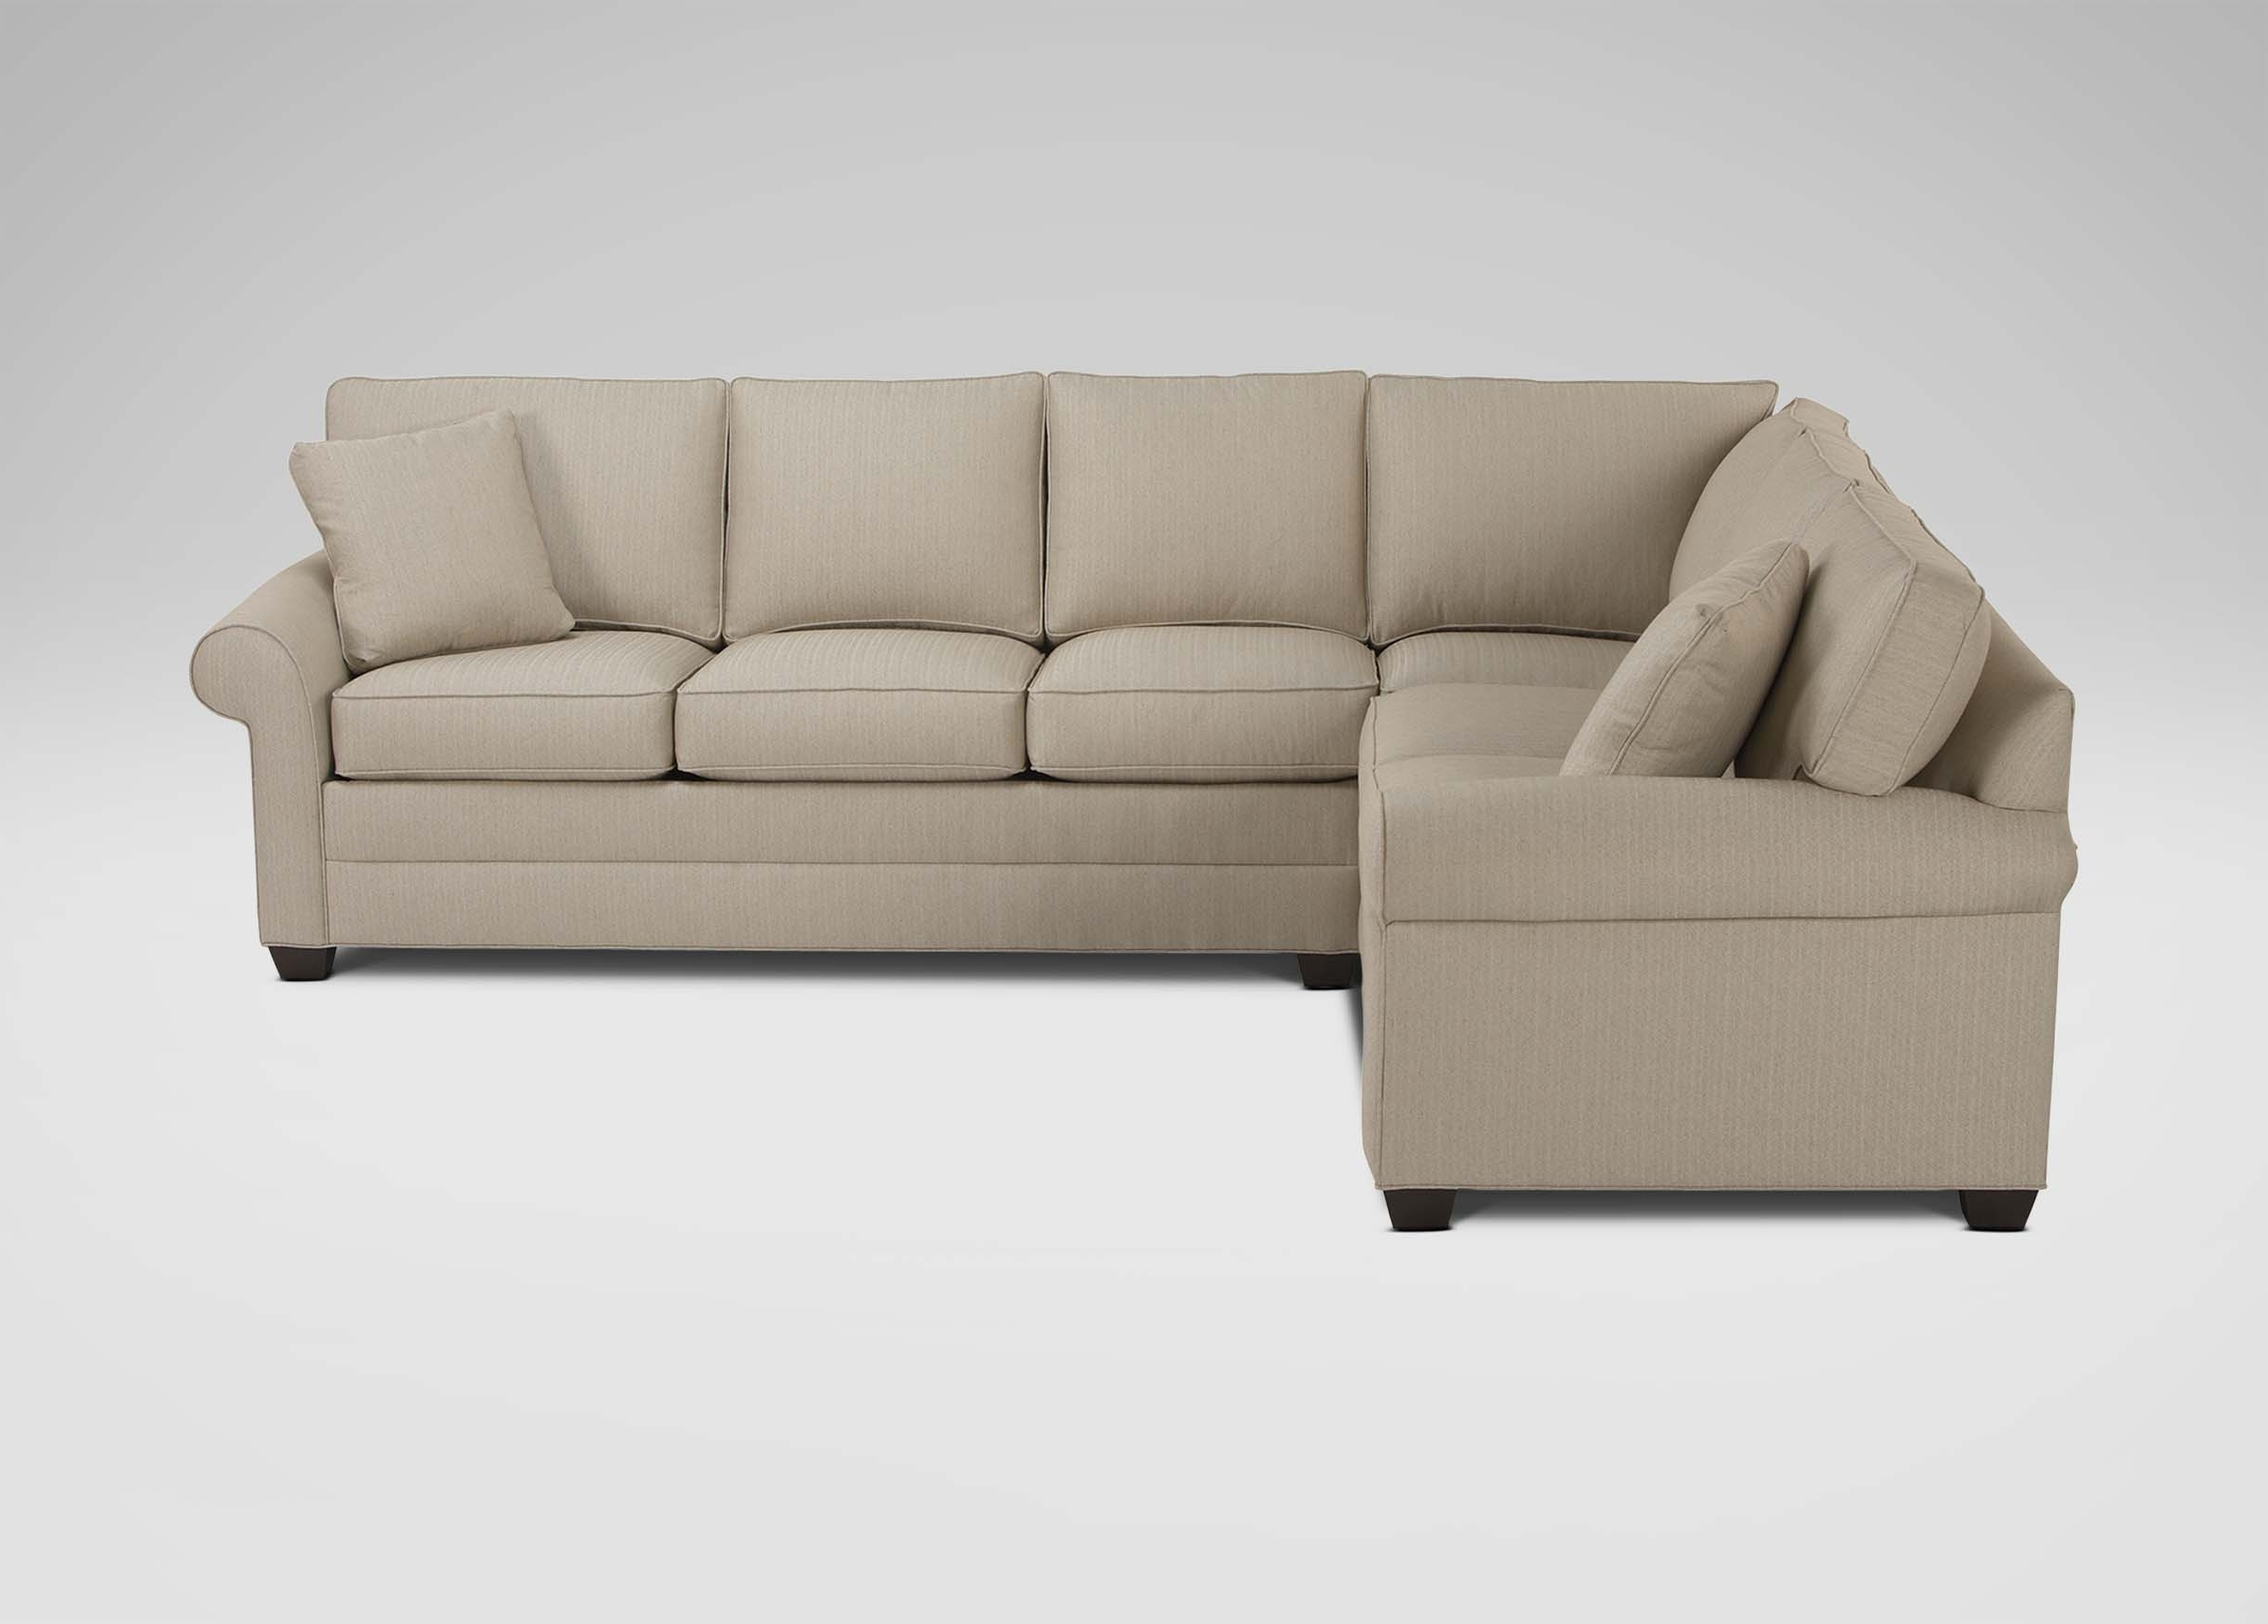 Ethan Allen Chaises With Well Known Ethan Allen Sectional Sofas Contemporary Bennett Roll Arm (View 9 of 15)